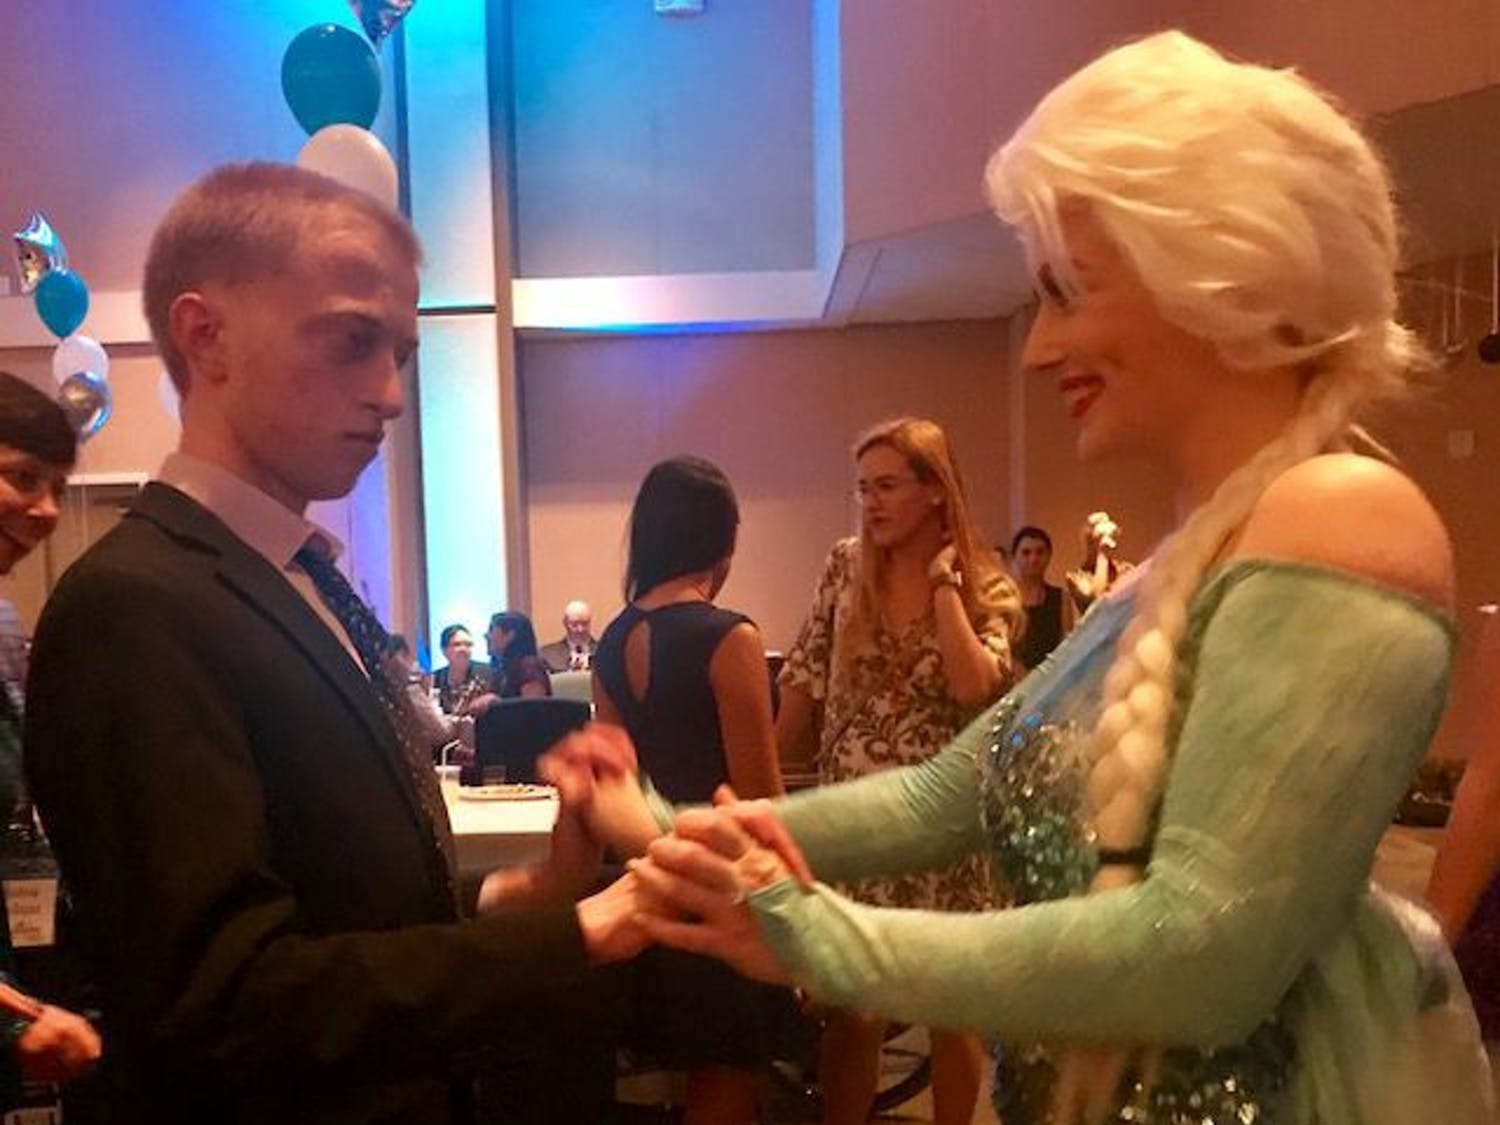 Guest David Ison is dancing with Jeana Fraser, UF sophomore serving with Project Princess as Queen Elsa.